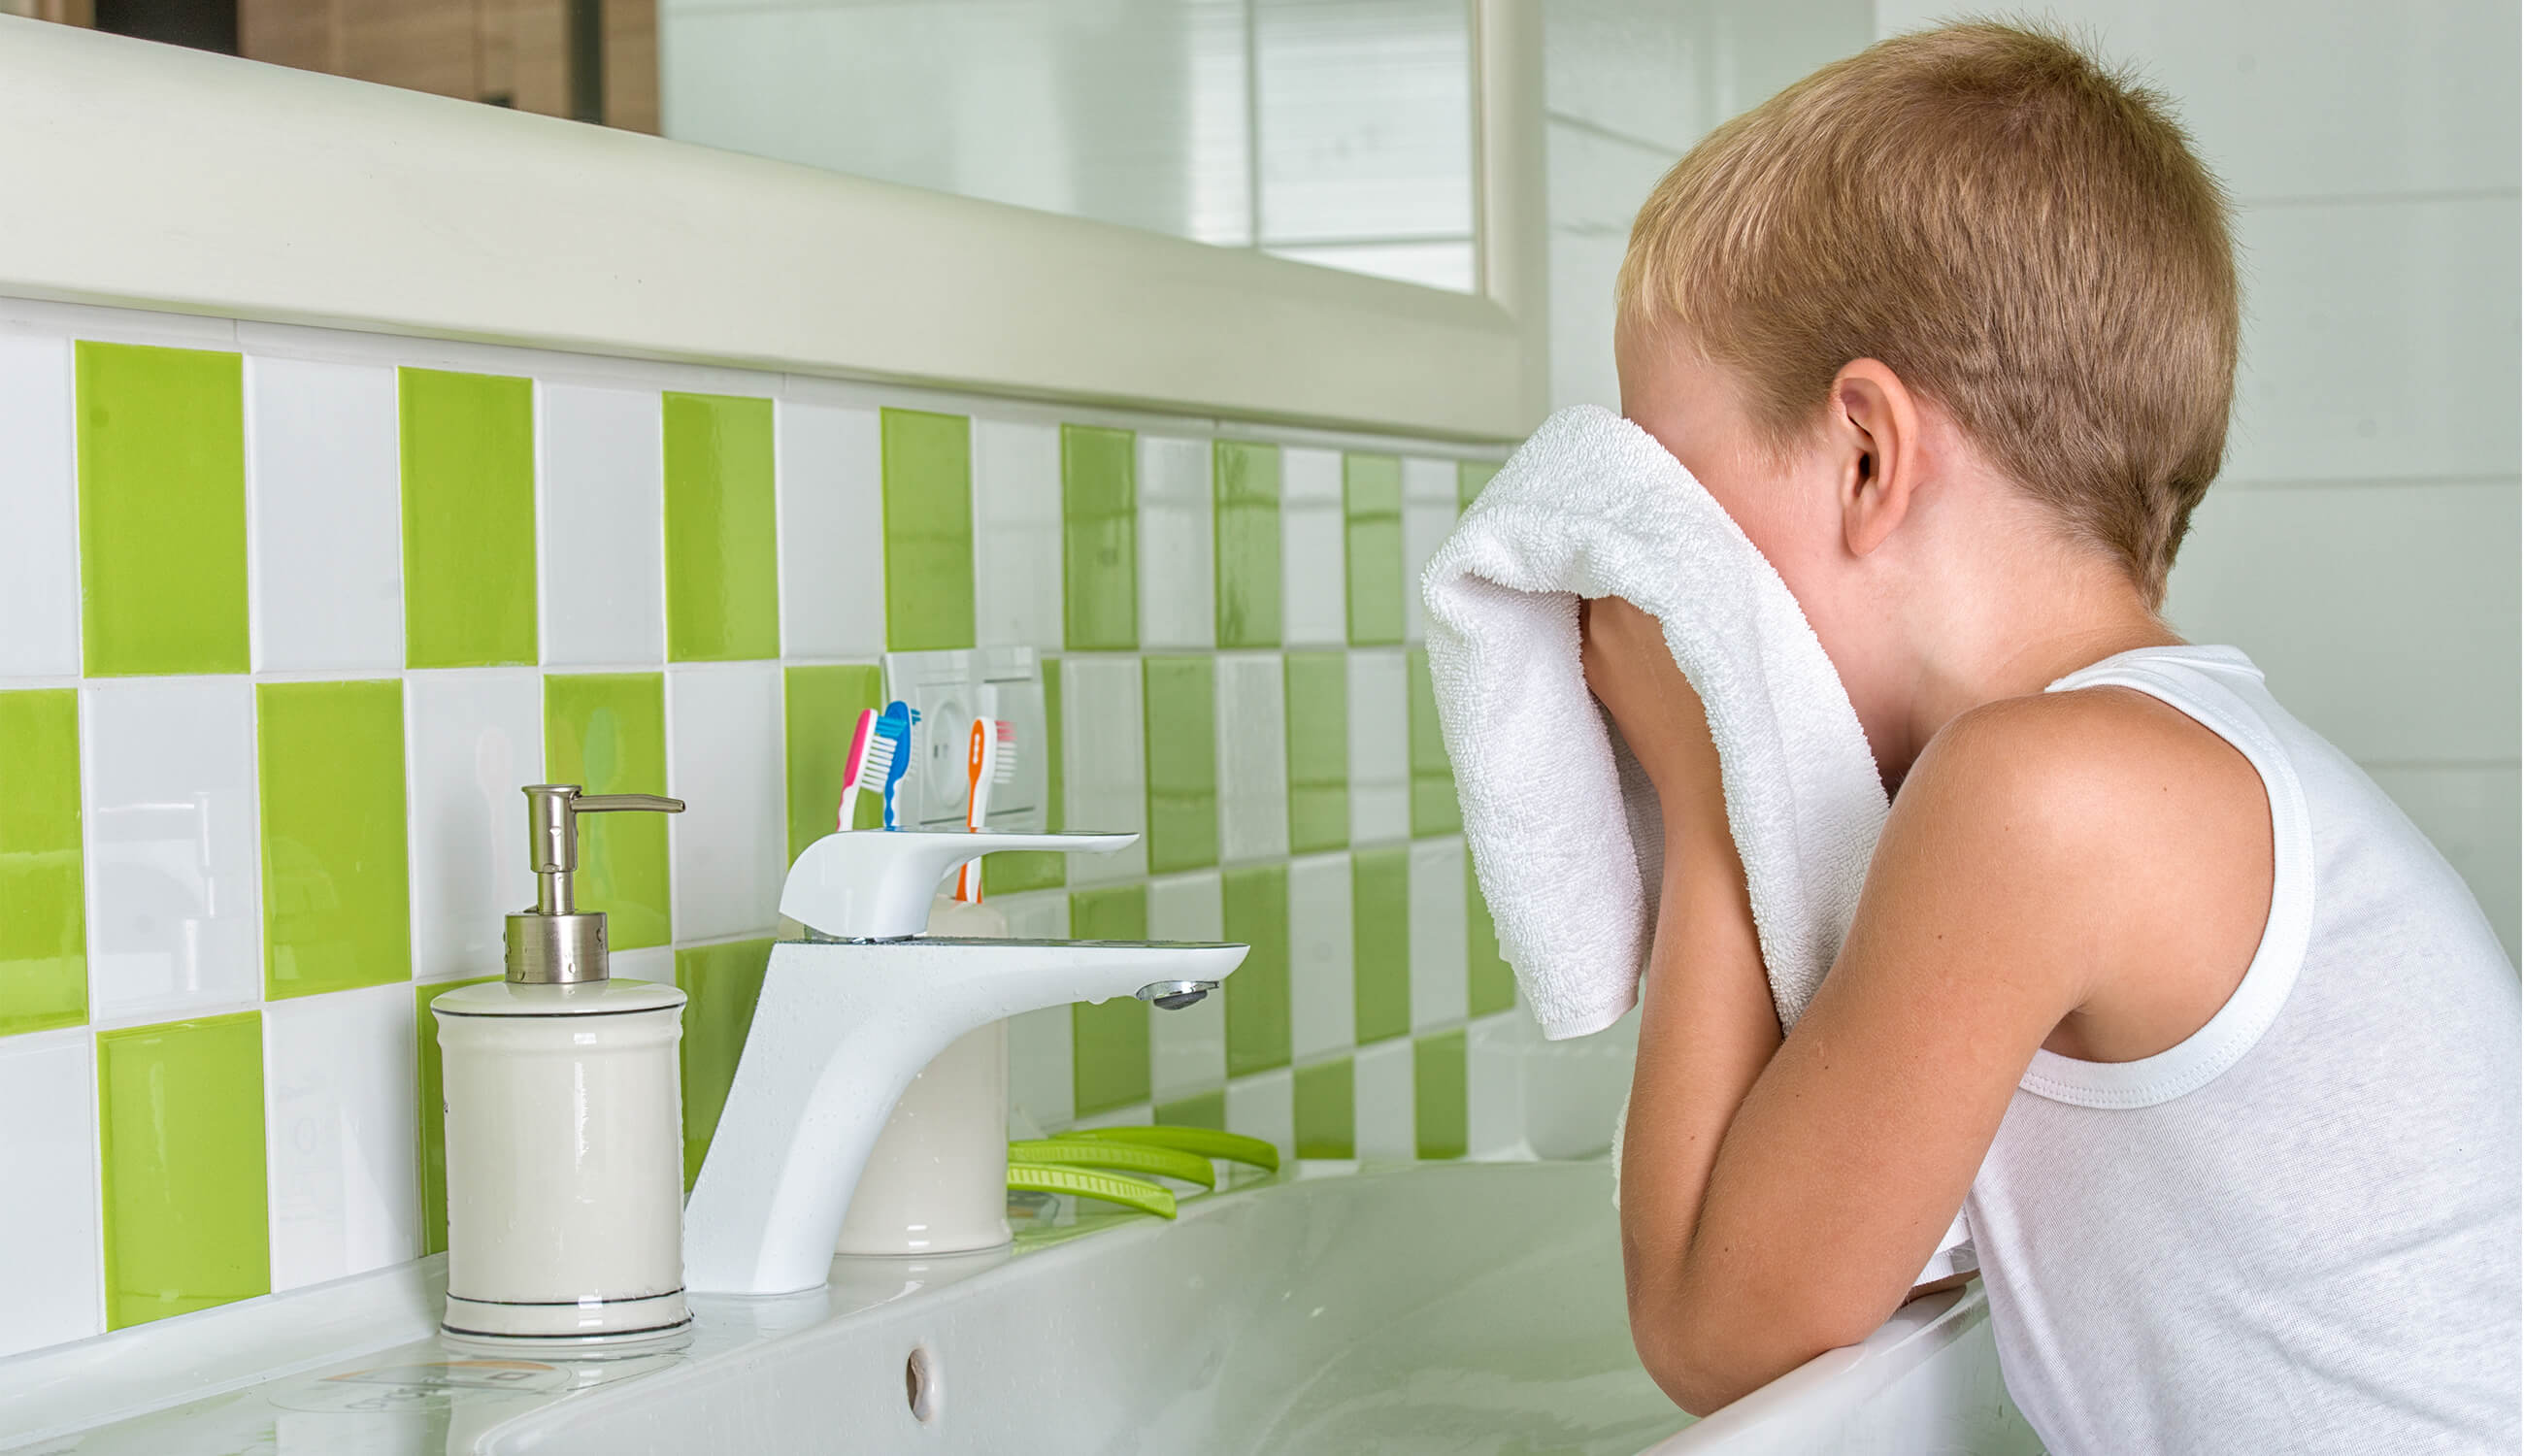 a boy washes his face.jpg